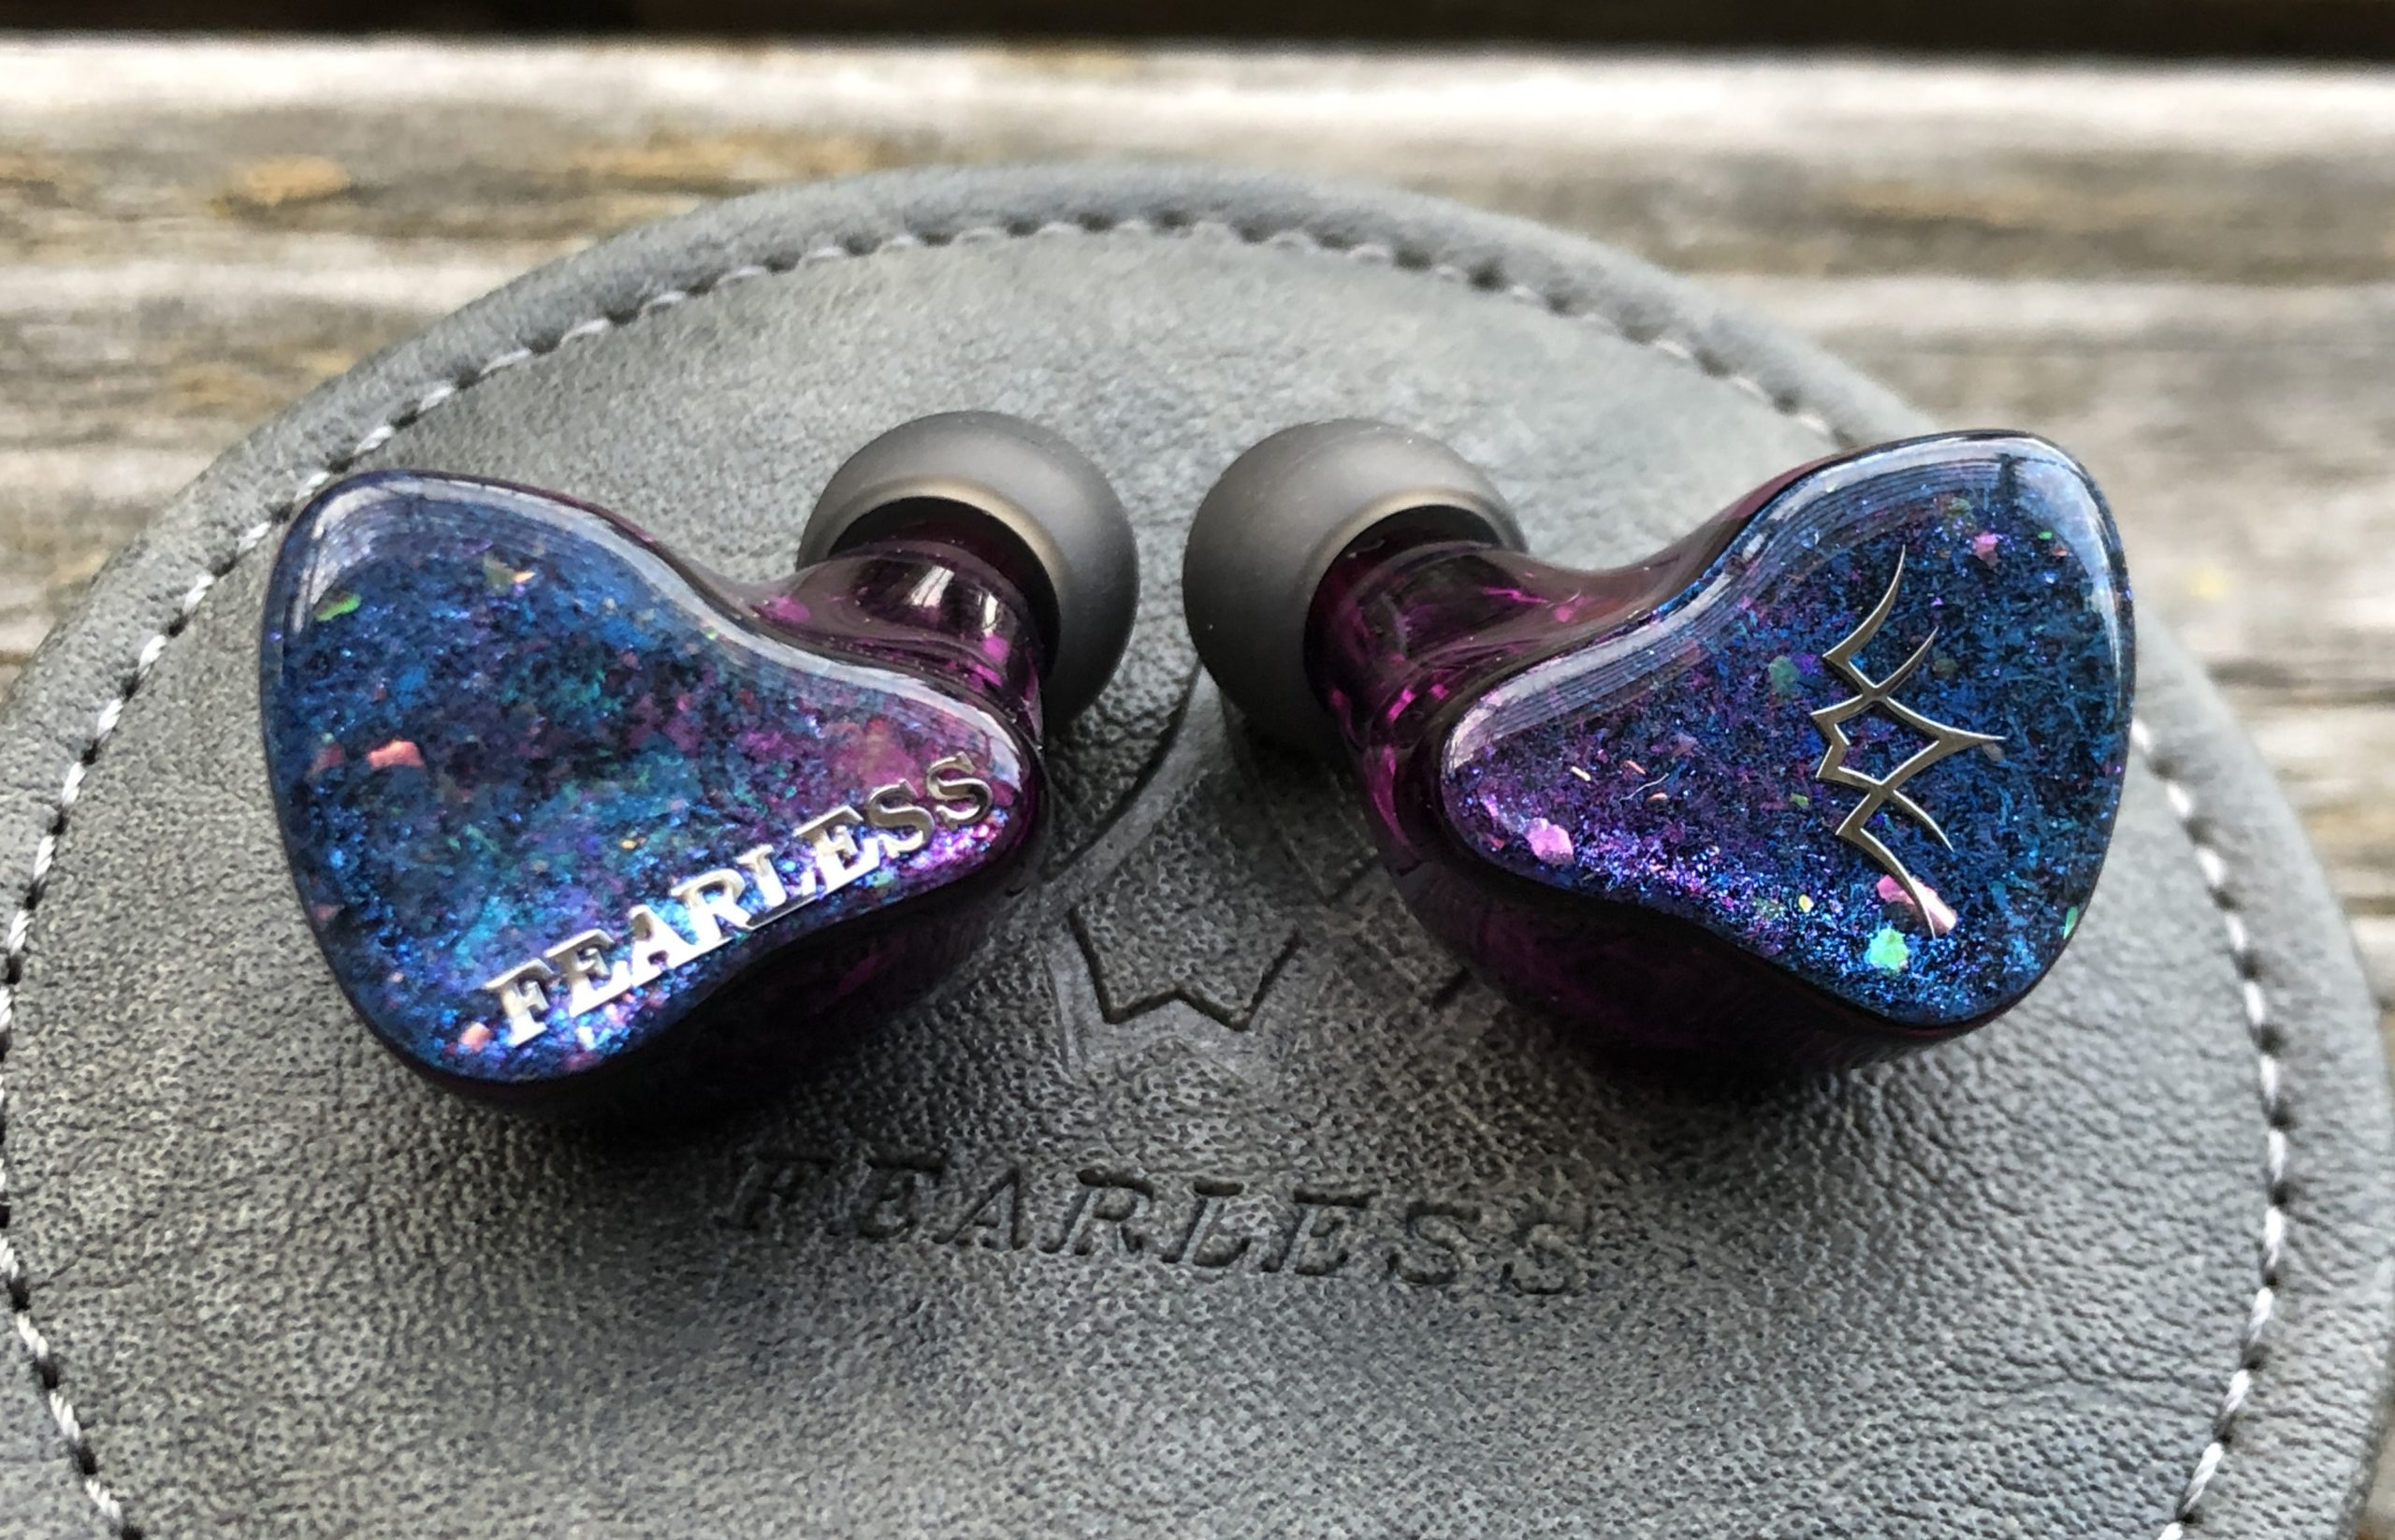 Fearless Audio S8 Pro Review